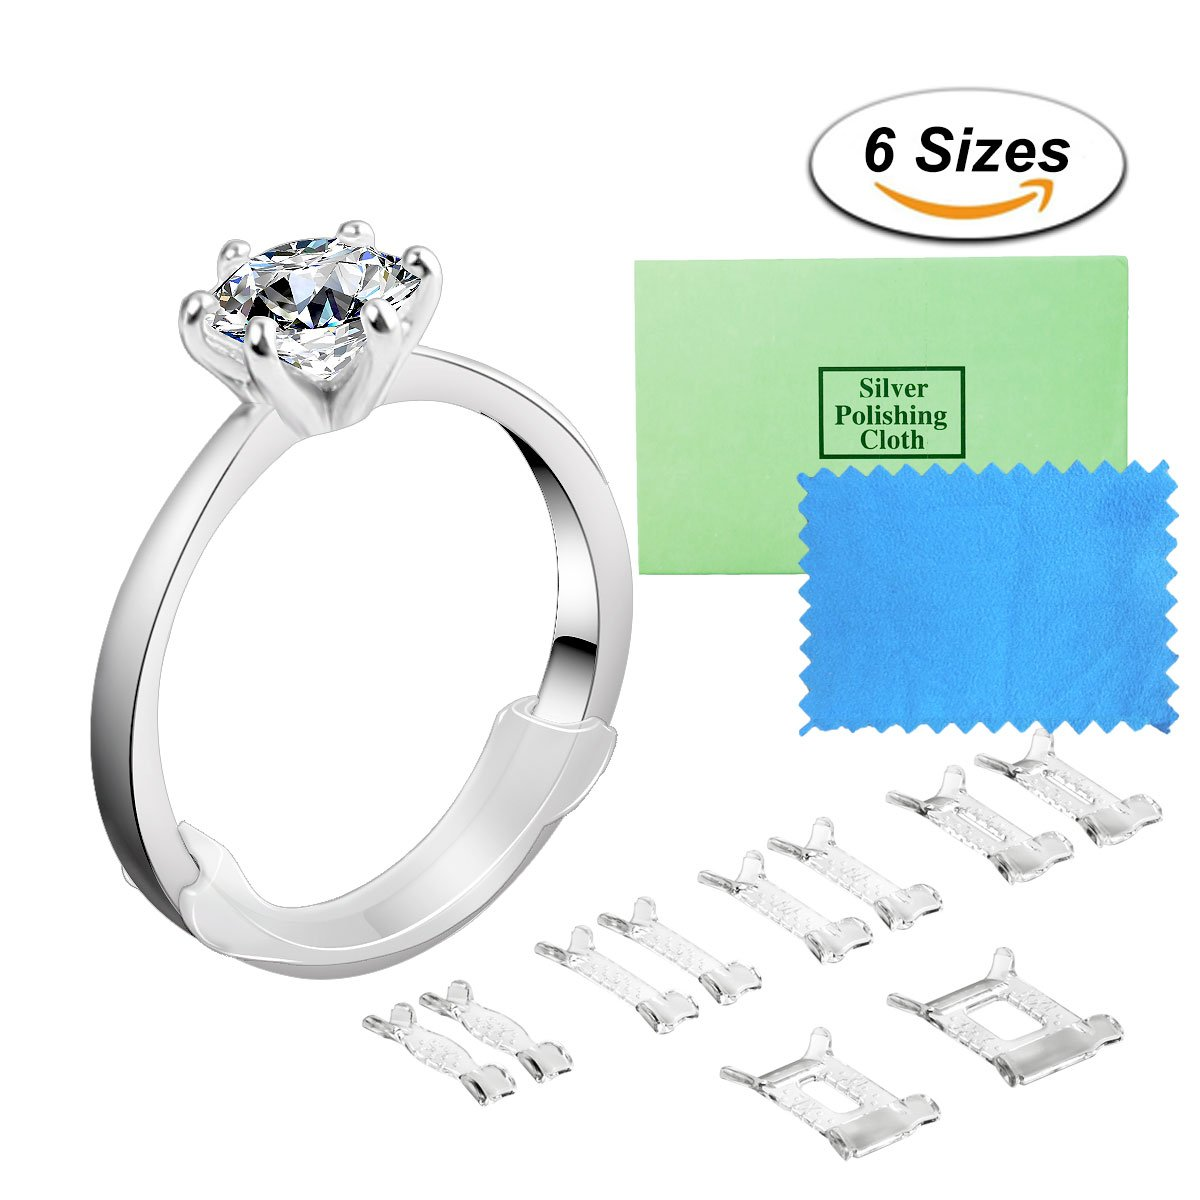 Ring Size Adjuster Invisible Ring Adjuster Sizer Reducer with Jewelry Polishing Cloth for Loose Rings, 10 Pieces, 6 Sizes eMigoo